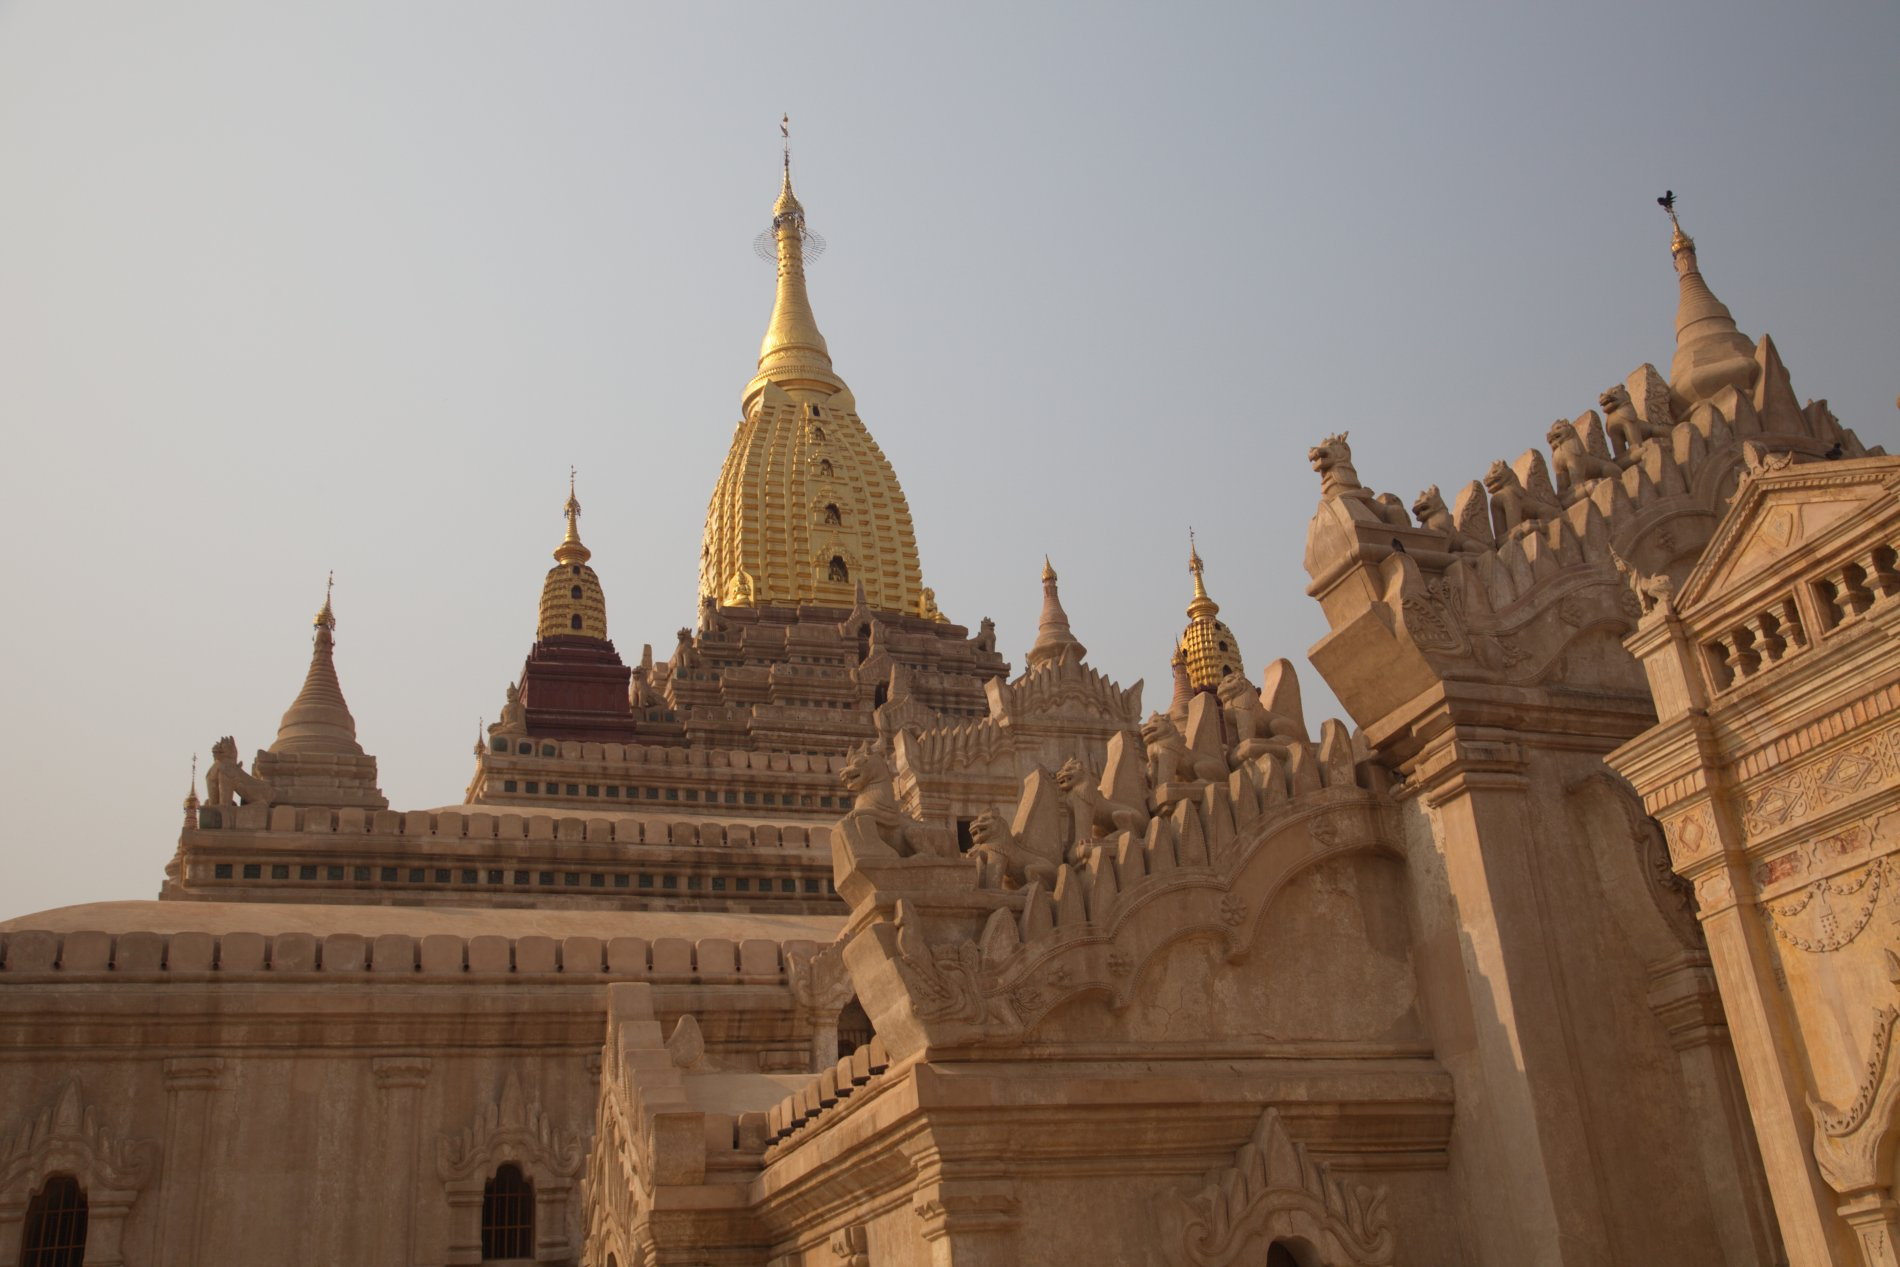 Bagan_076.jpg-commment